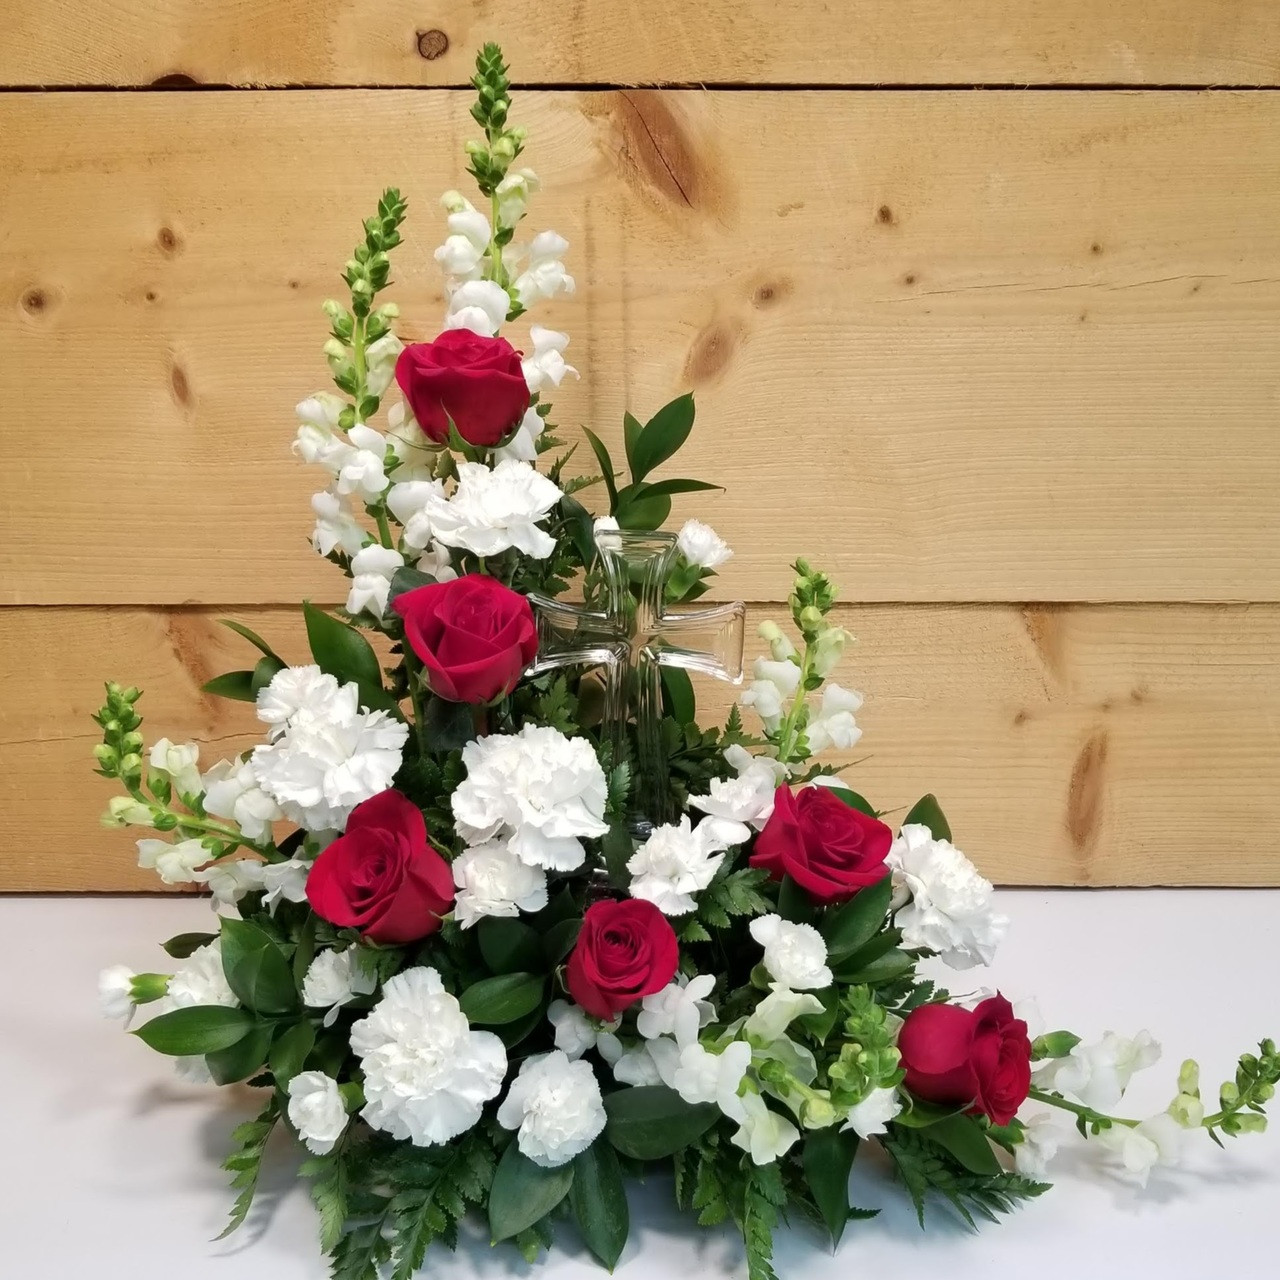 Christmas Flower Arrangements.The Divine Cross Bouquet